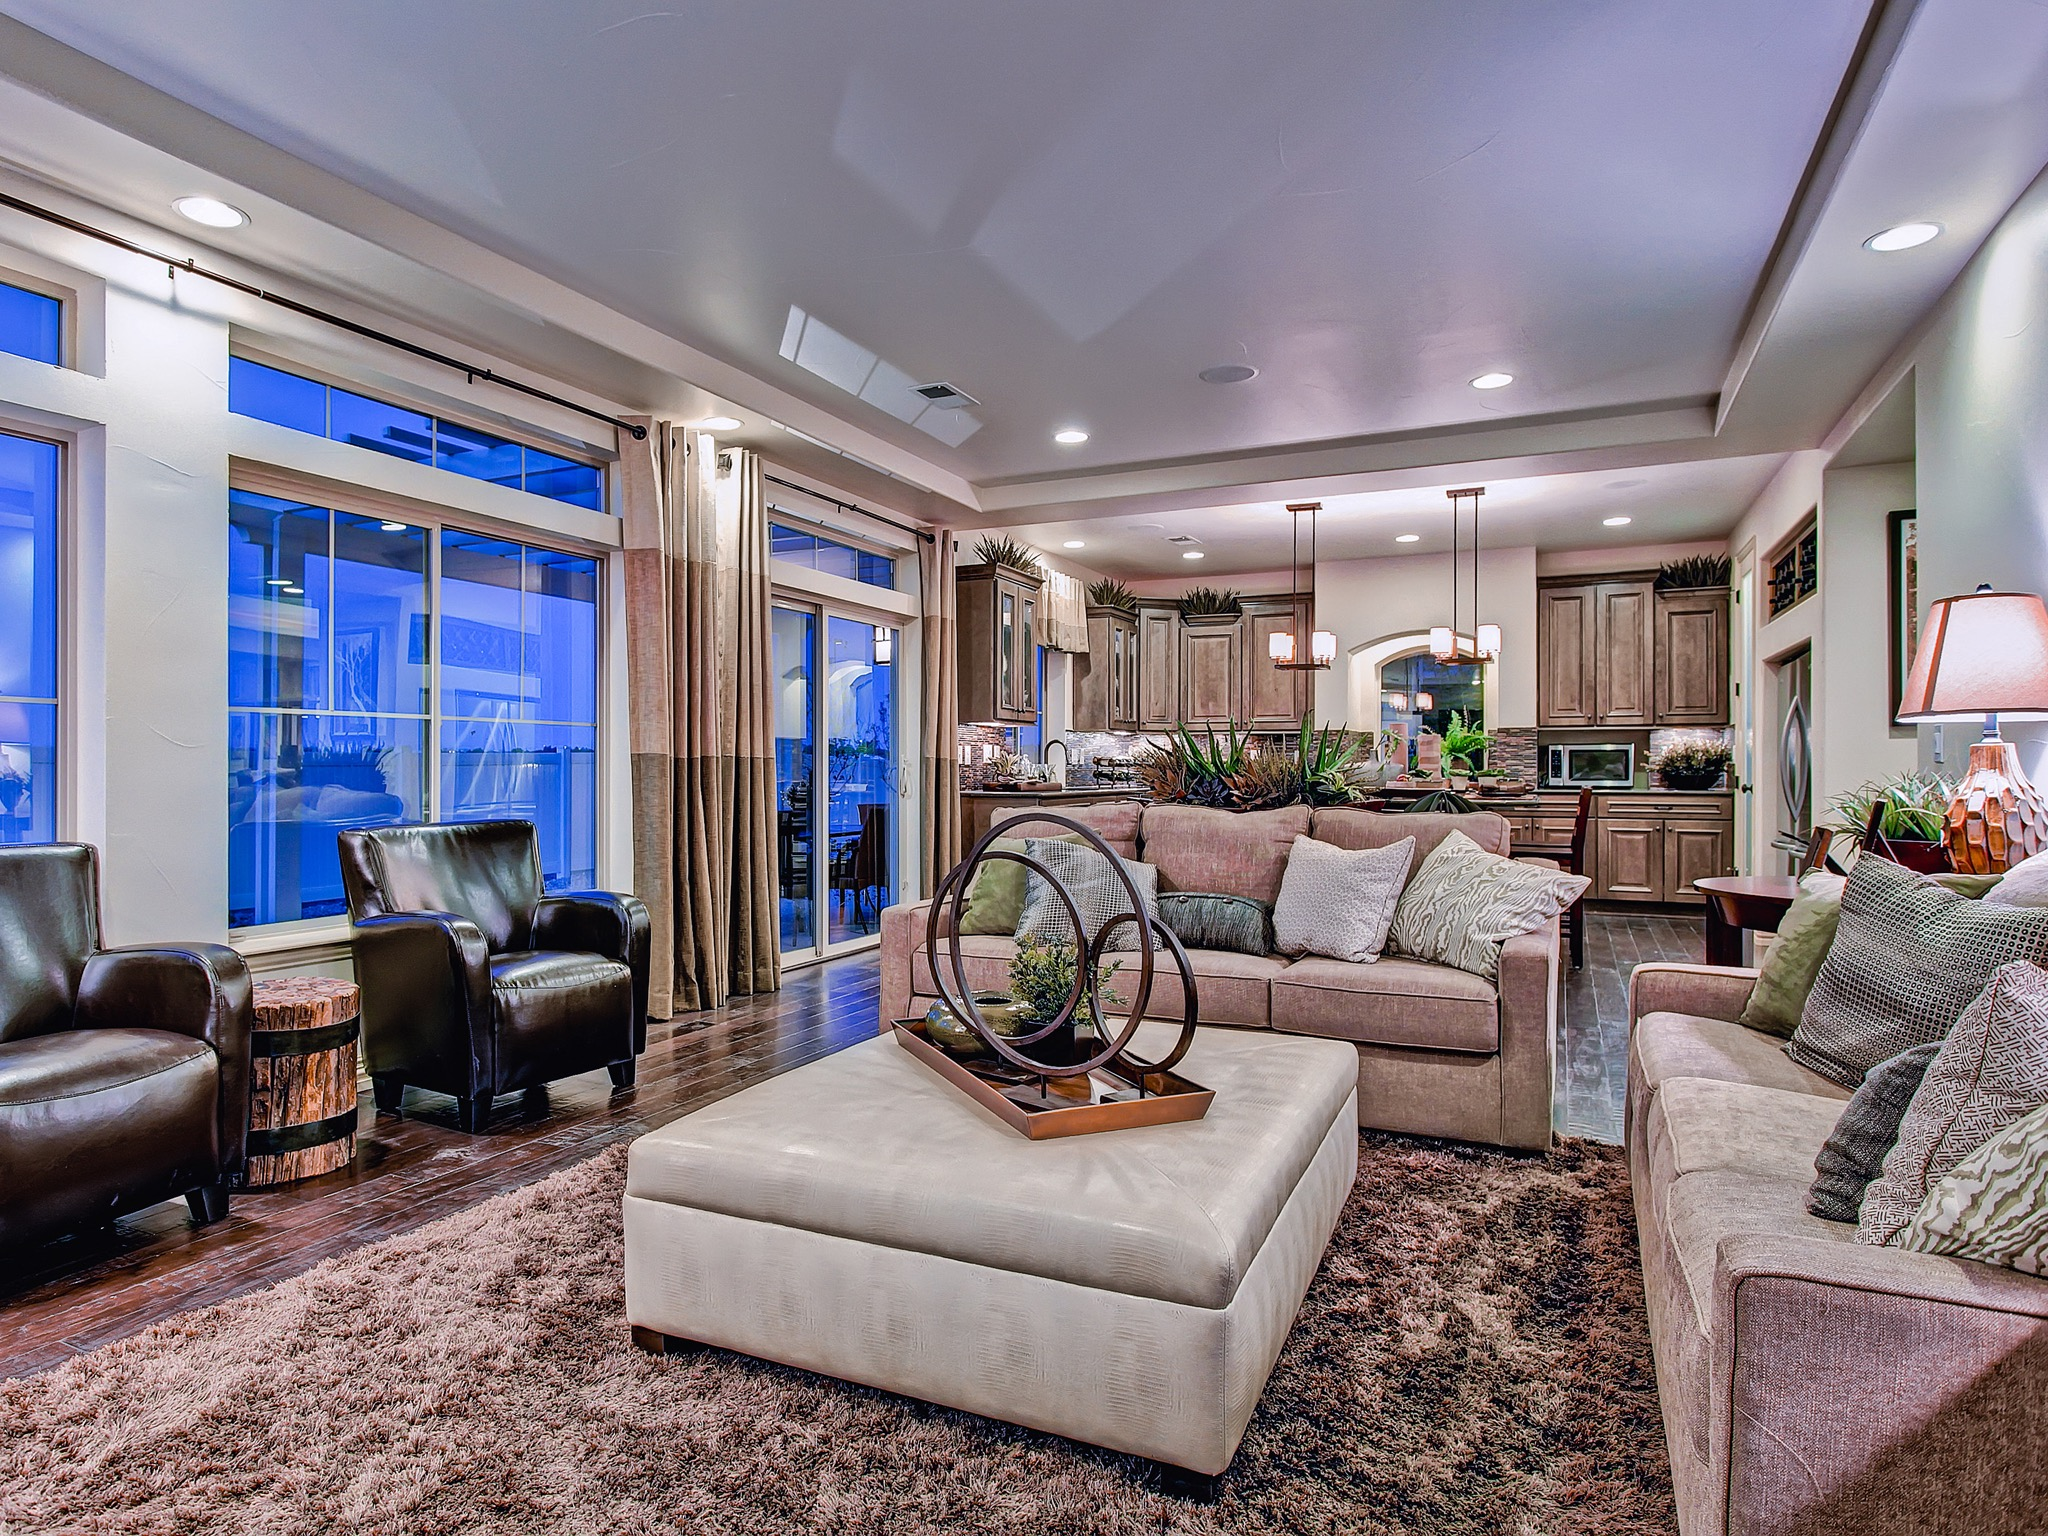 Classic Luxury Living Room With Neutral Ottoman, Large Windows And Tan Sofa (Image 1 of 32)